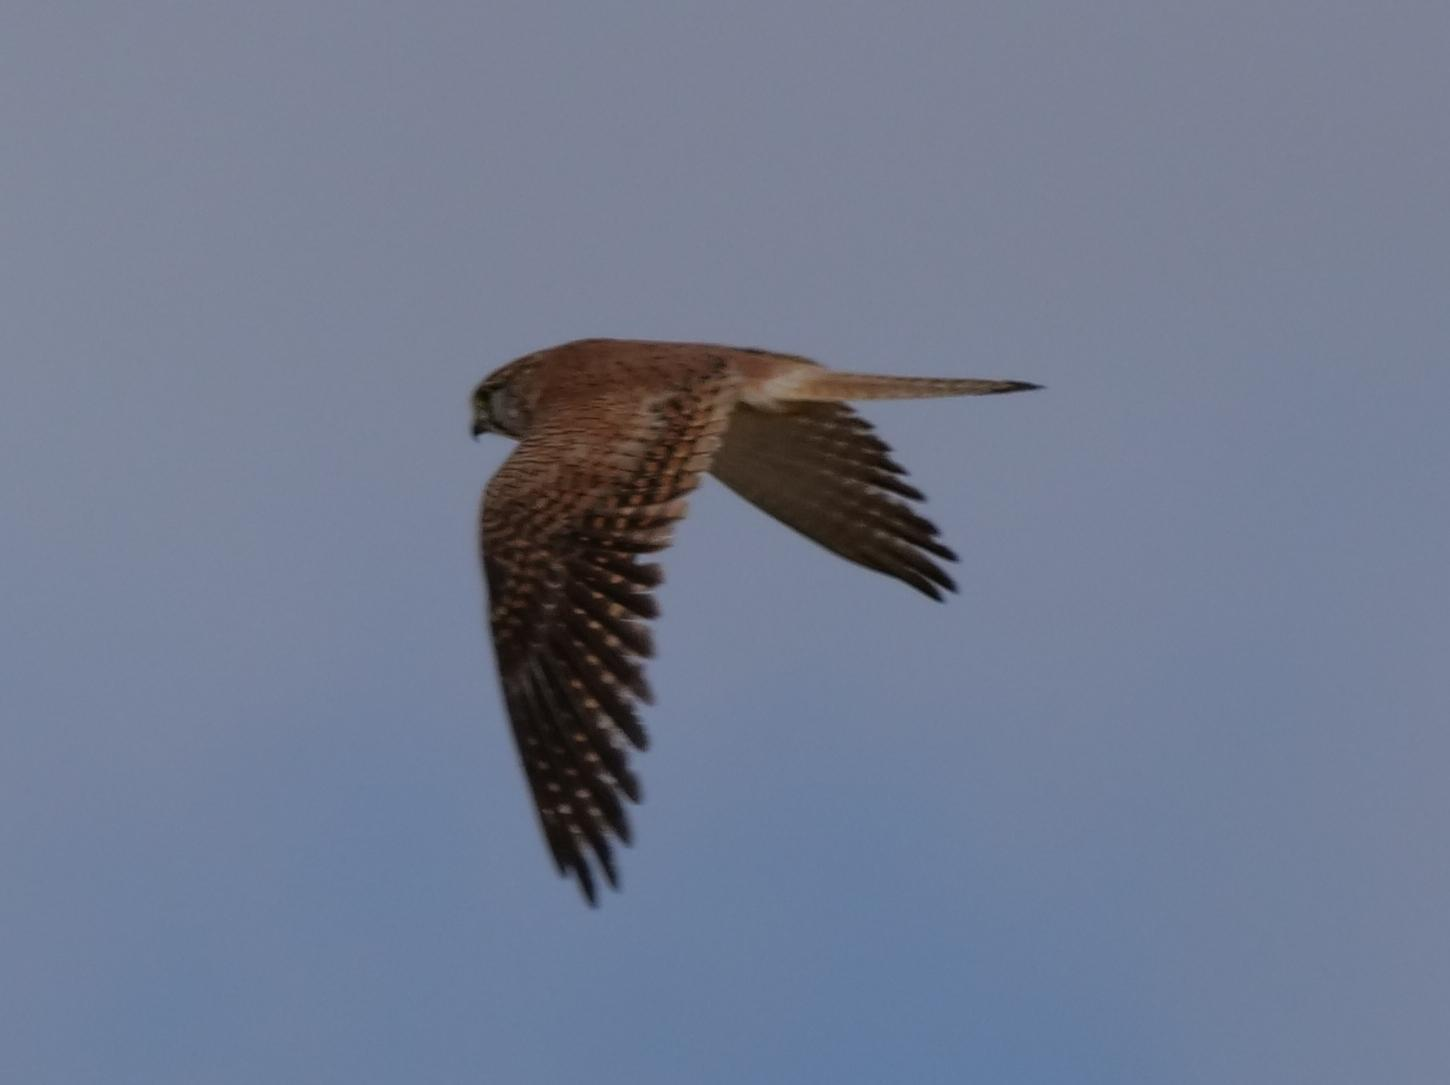 Australian Kestrel Photo by Peter Lowe